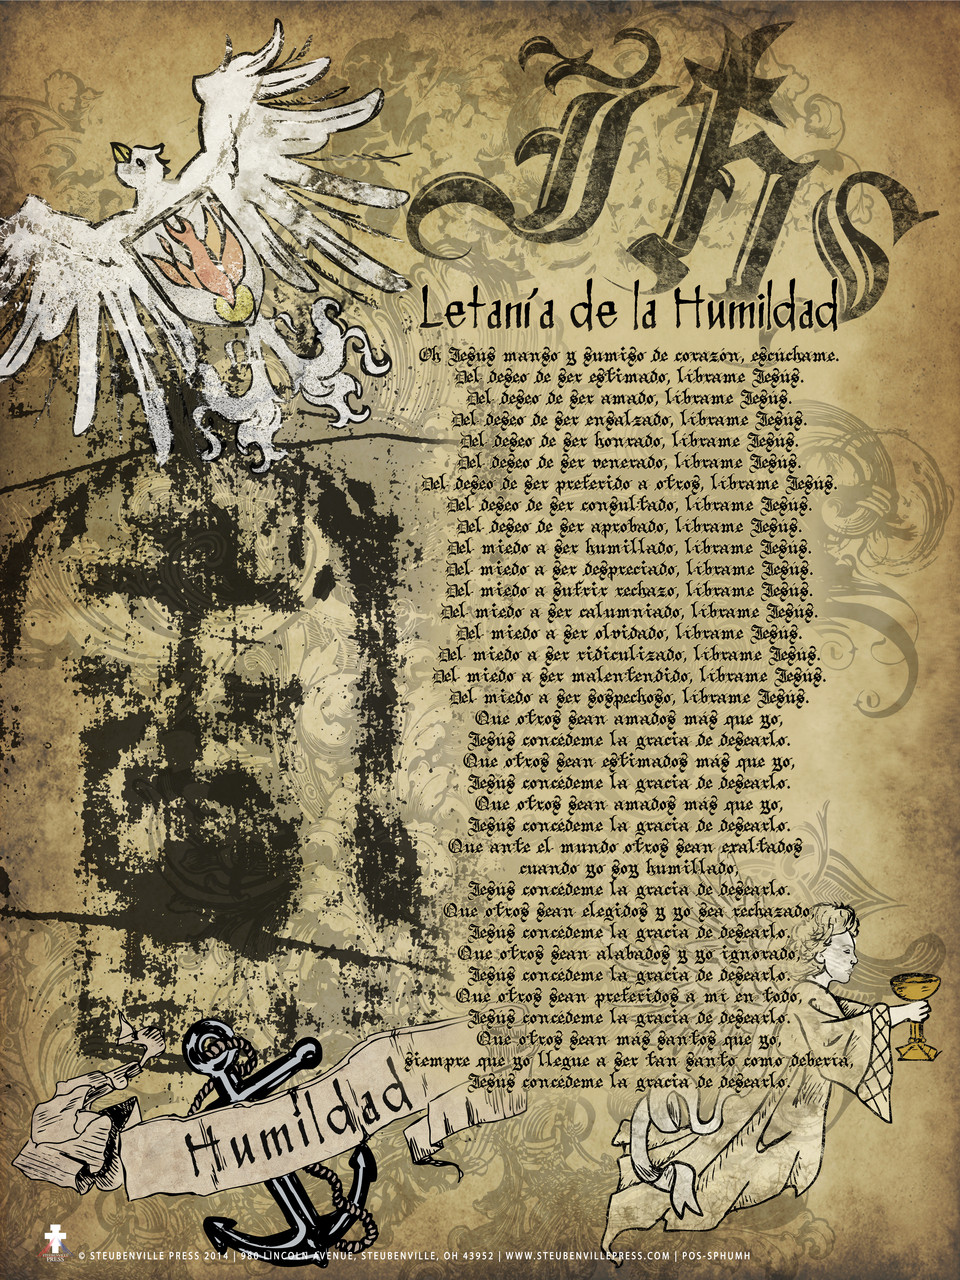 graphic about Litany of Humility Printable identify Spanish Lit. of Humility Poster